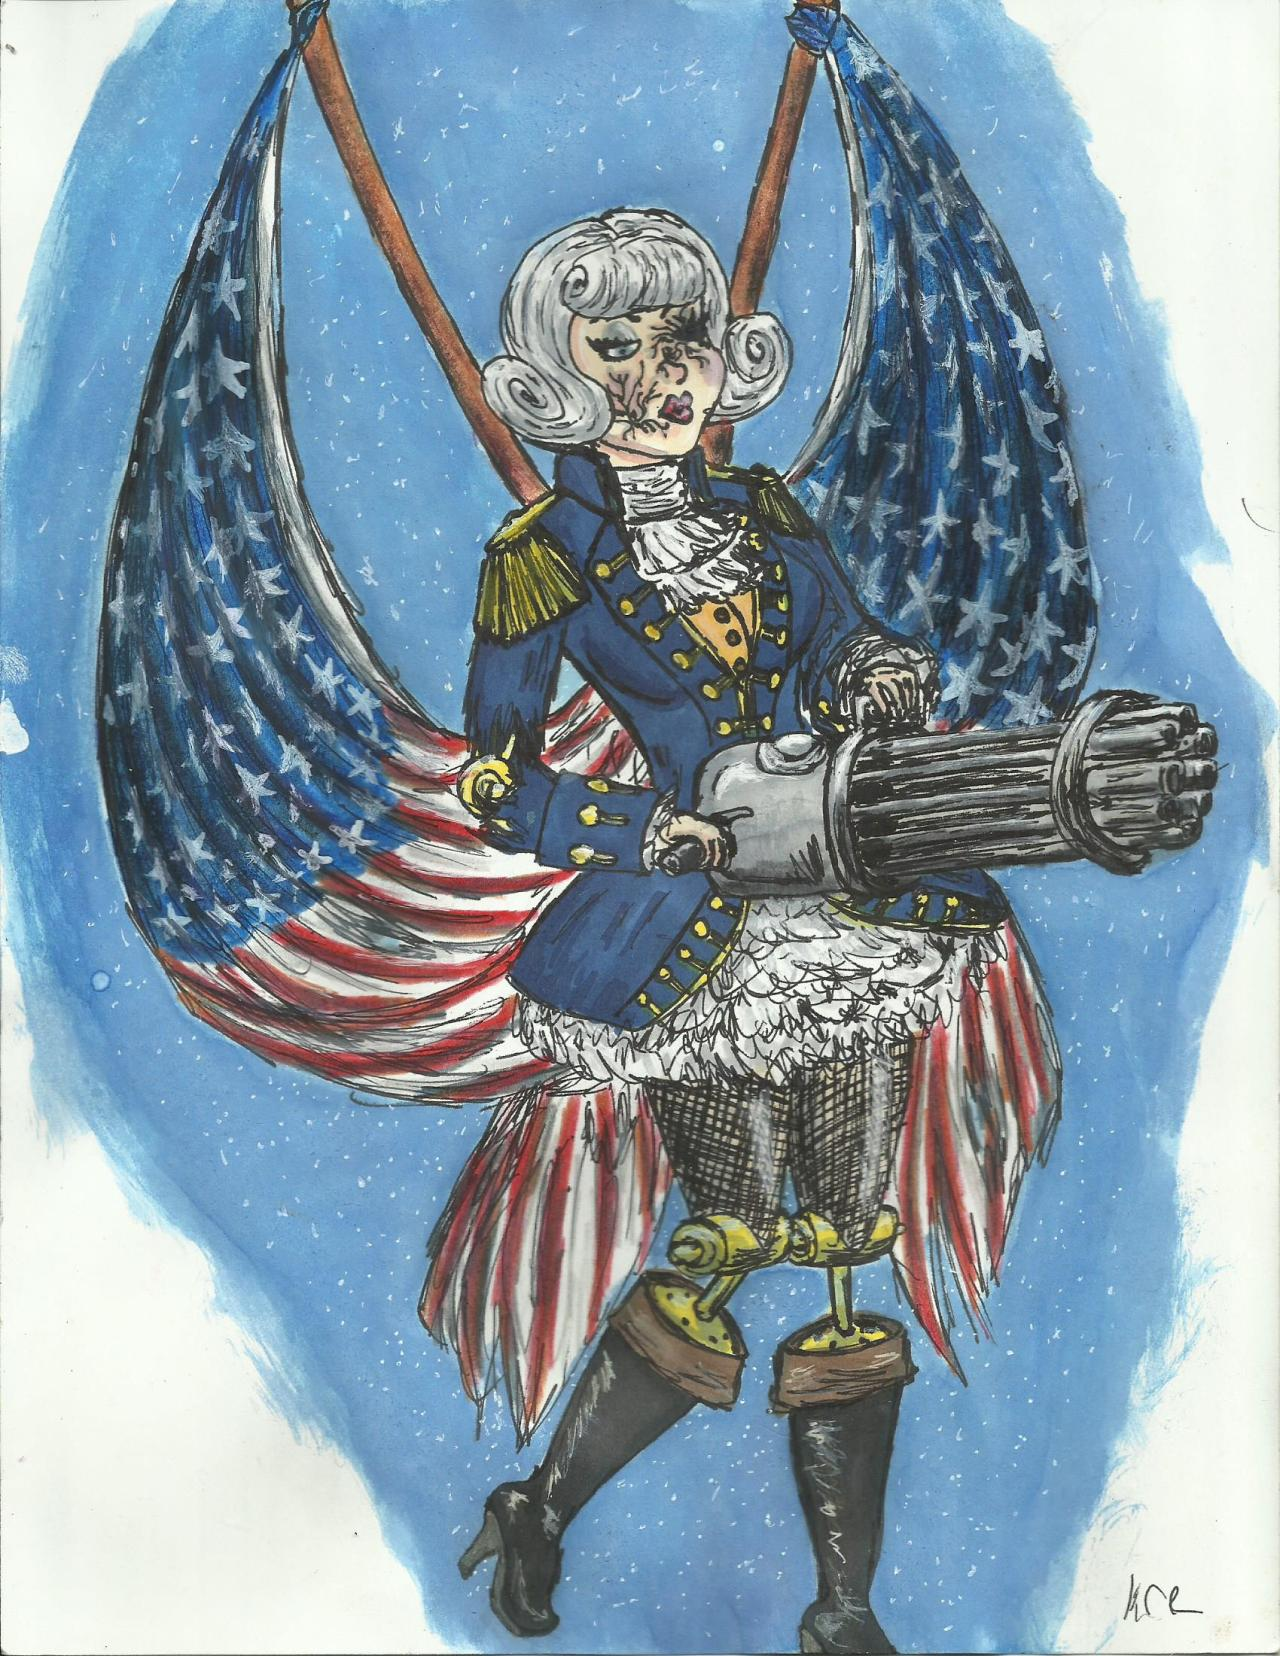 Lady Motorized Patriot who I kind of really REALLY want to cosplay but probably never will